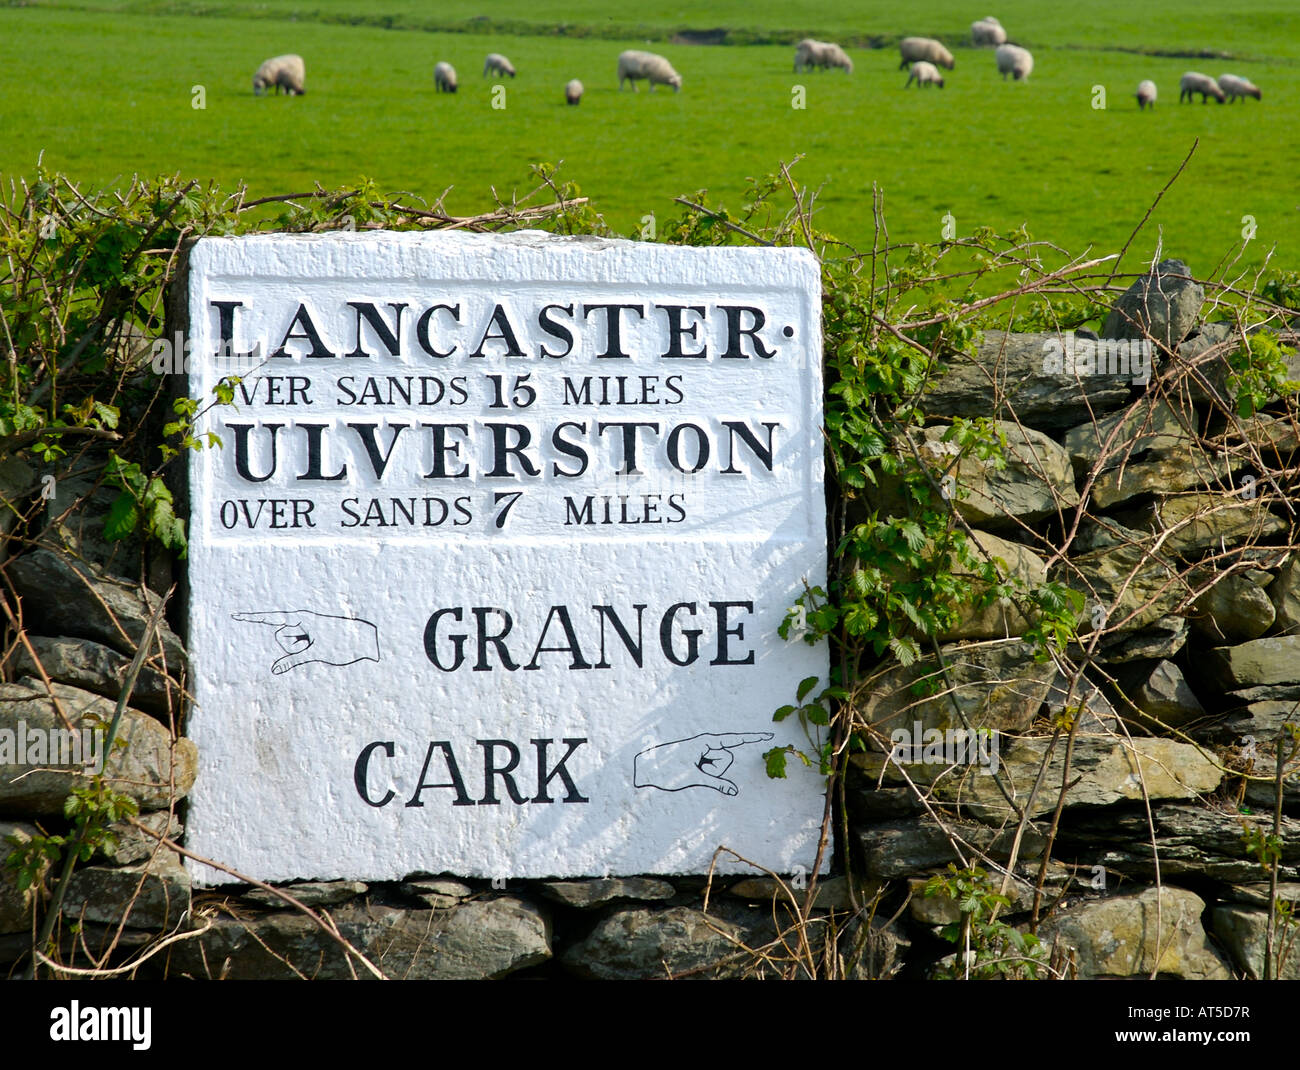 Old sign in Cartmel showing distances across the sands of Morecambe Bay, to Lancaster and Ulverston, Cumbria UK Stock Photo